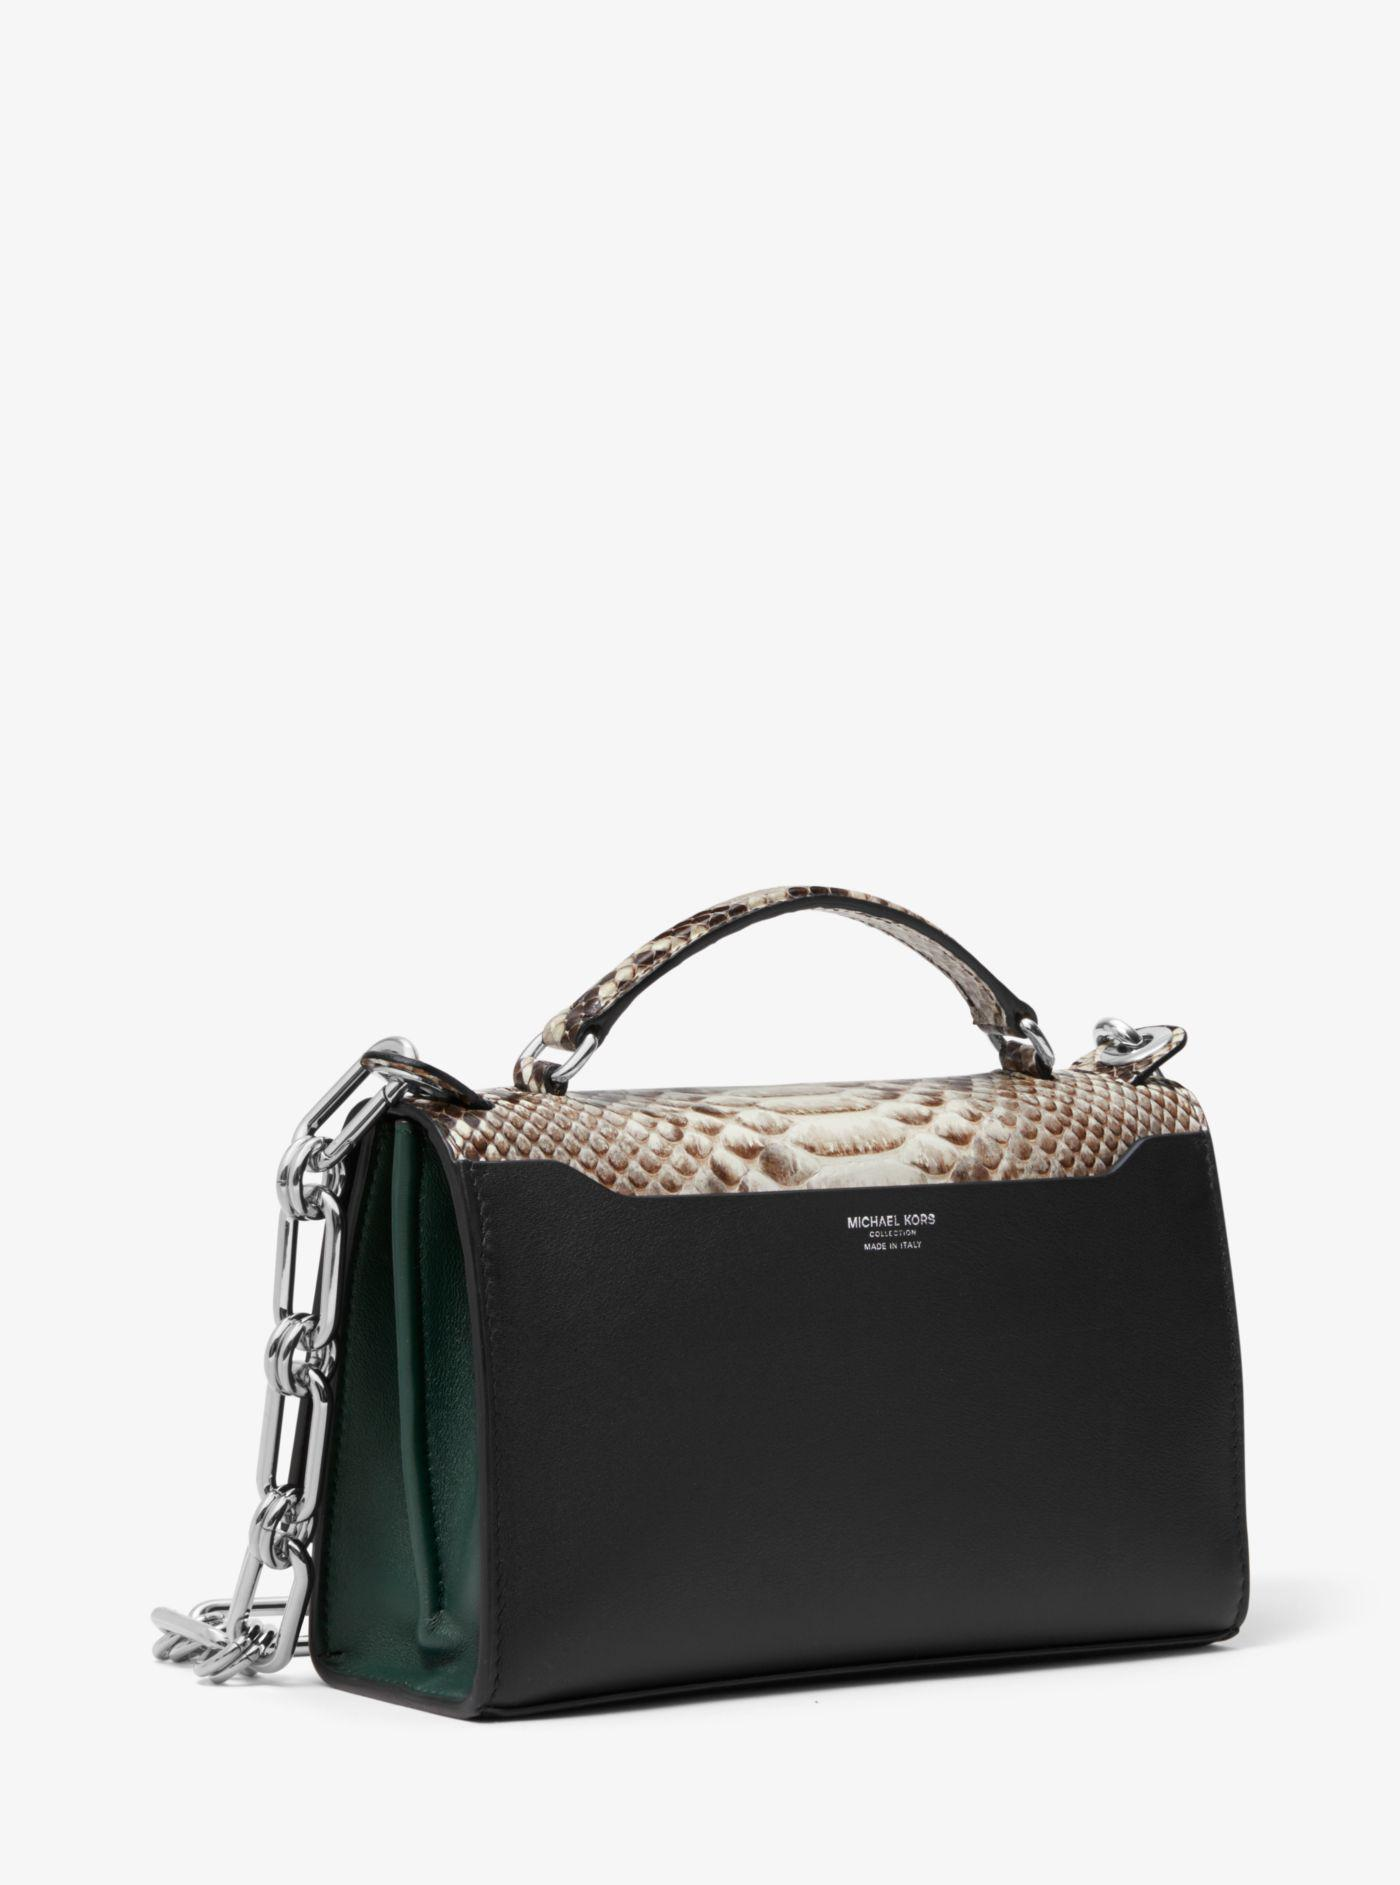 d793cfd67549 Lyst - Michael Kors Bancroft Python And Calf Leather Shoulder Bag in ...